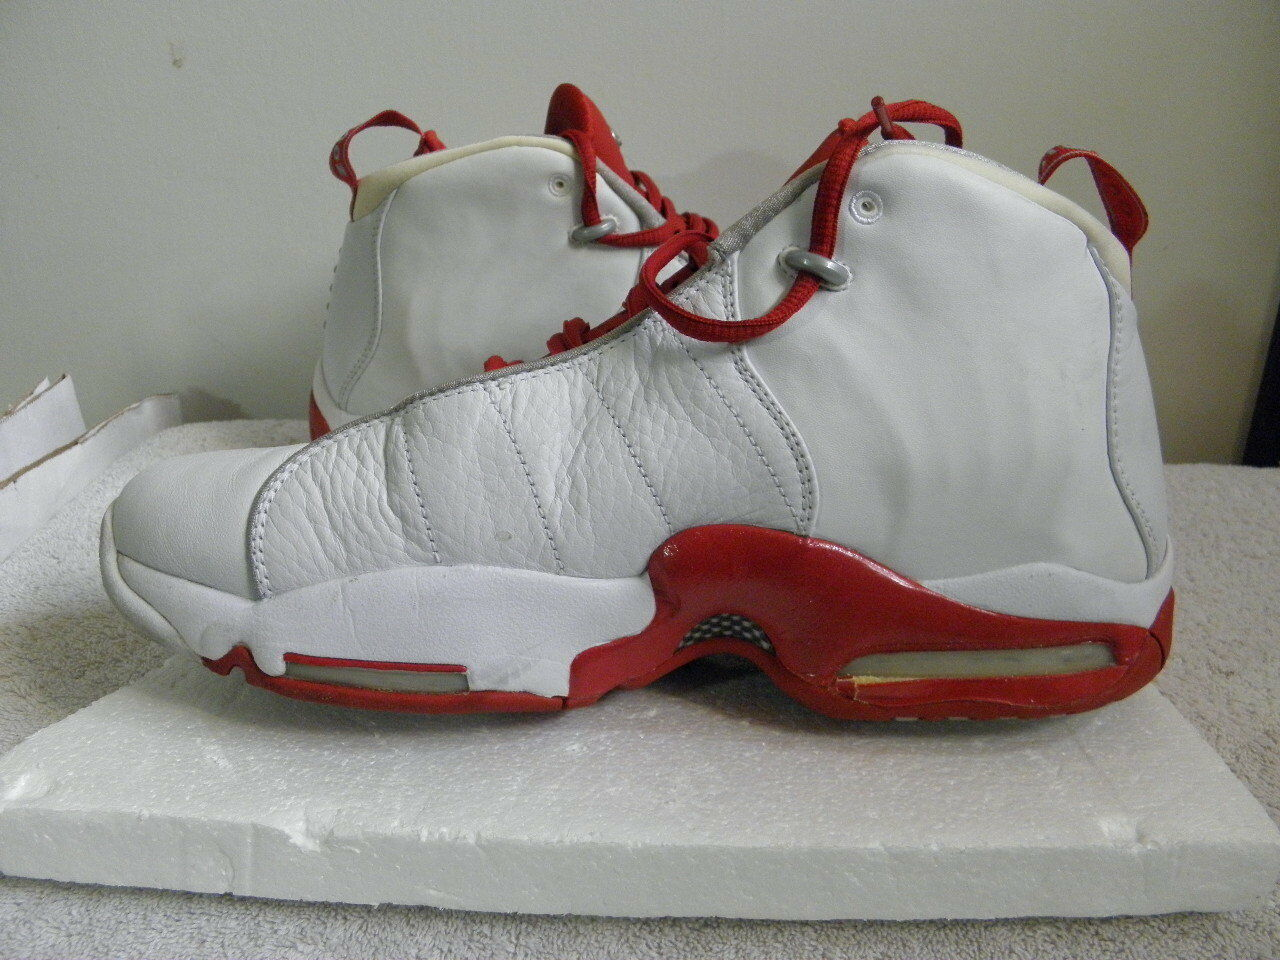 Nike Air Vis Zoom Viszoom Uptempo TB TB TB PE PS Samples size 11.5 white red OG VNDS 5a959c